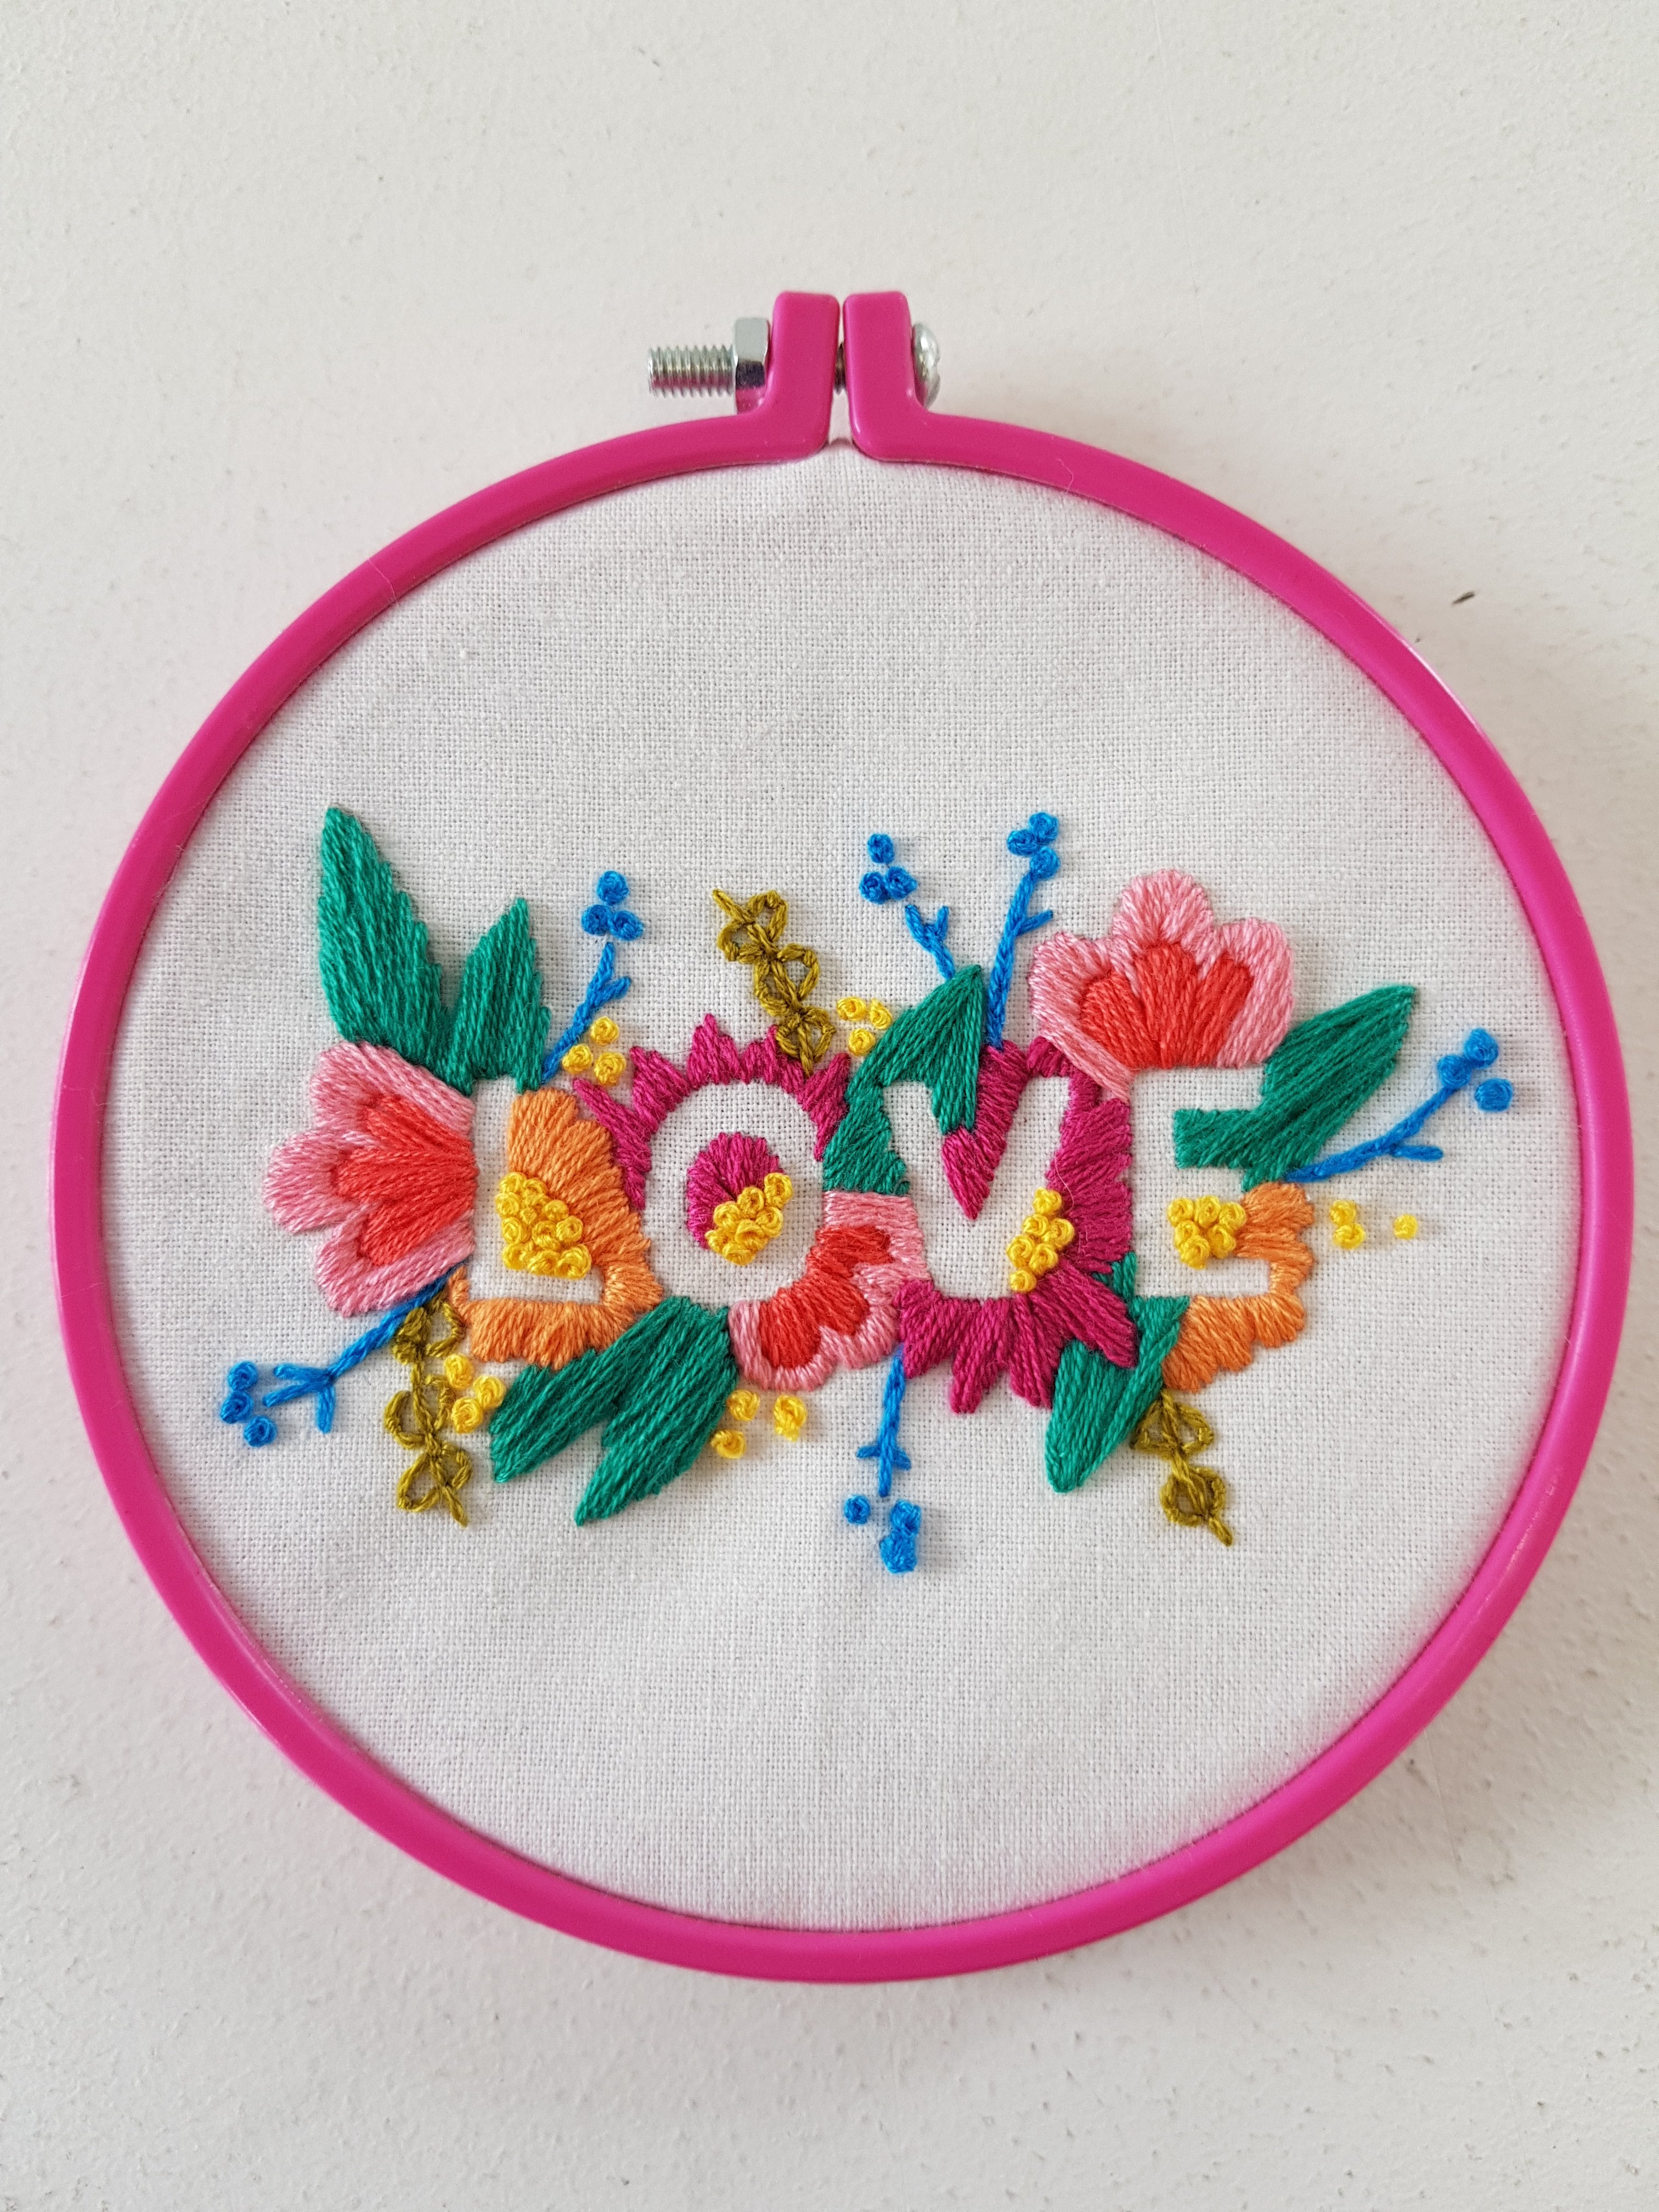 Almond rock brynn and co love embroidery negative space